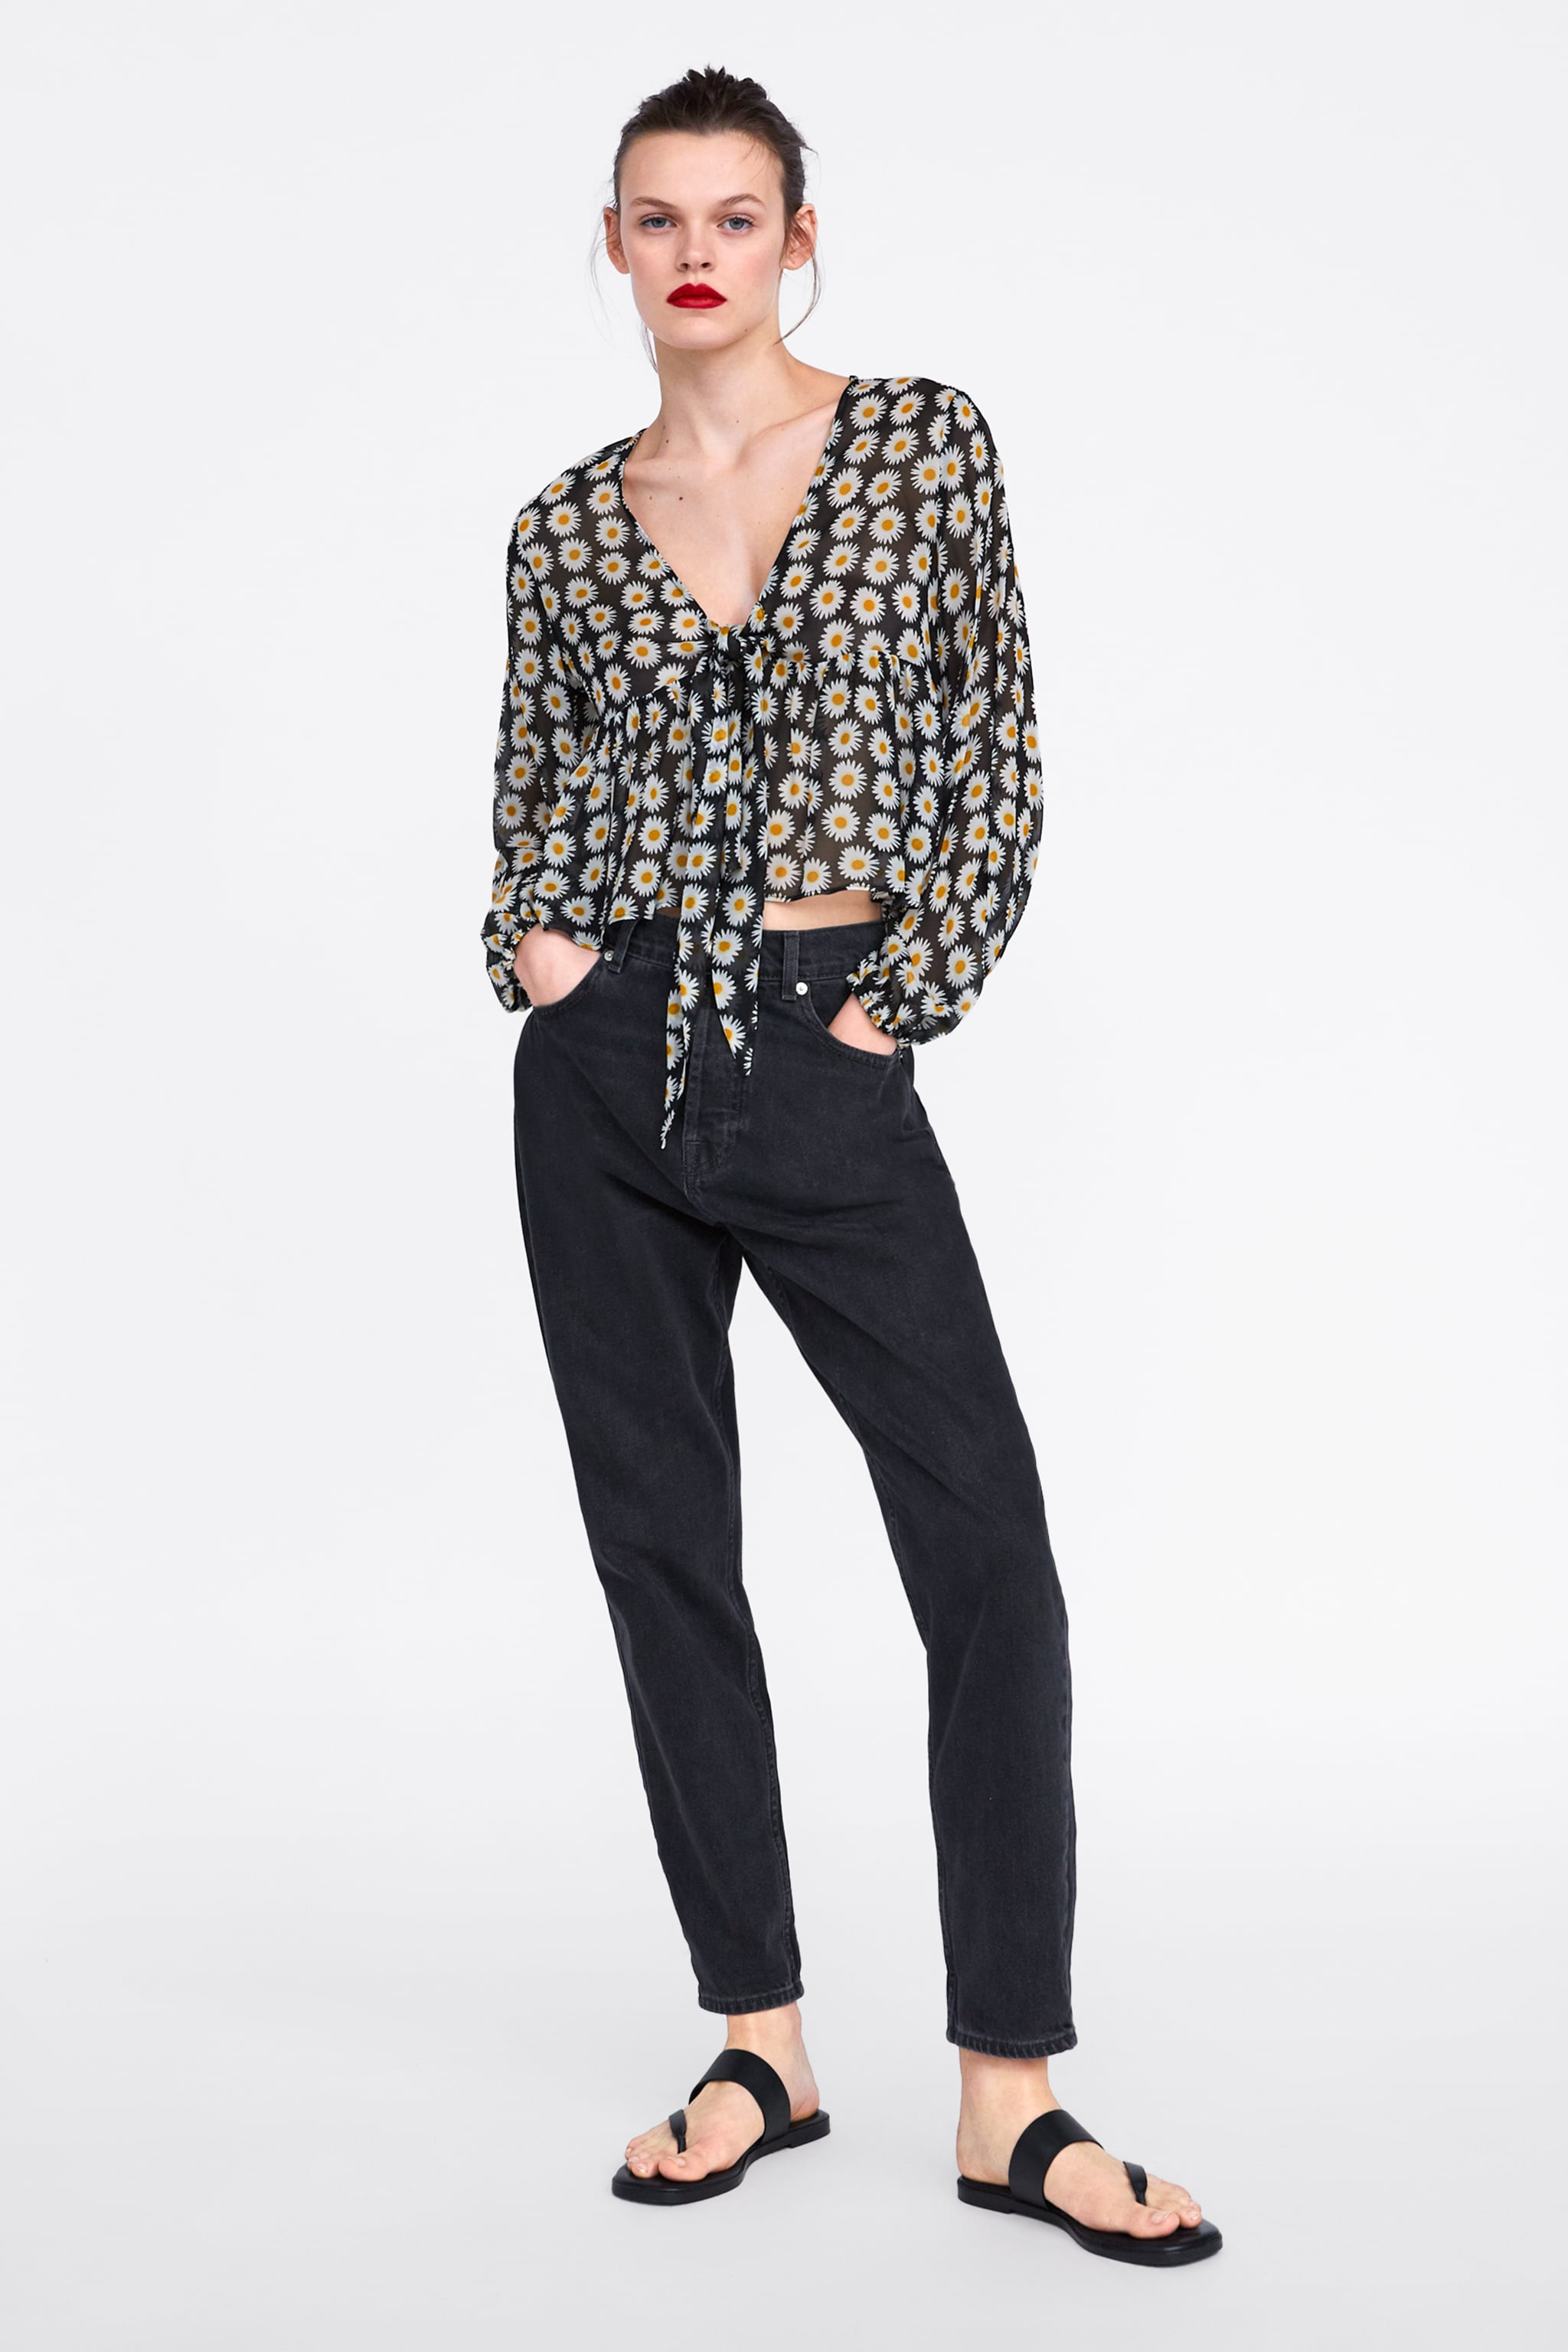 ce620532795 Zara FLORAL PRINT BLOUSE WITH RUFFLE